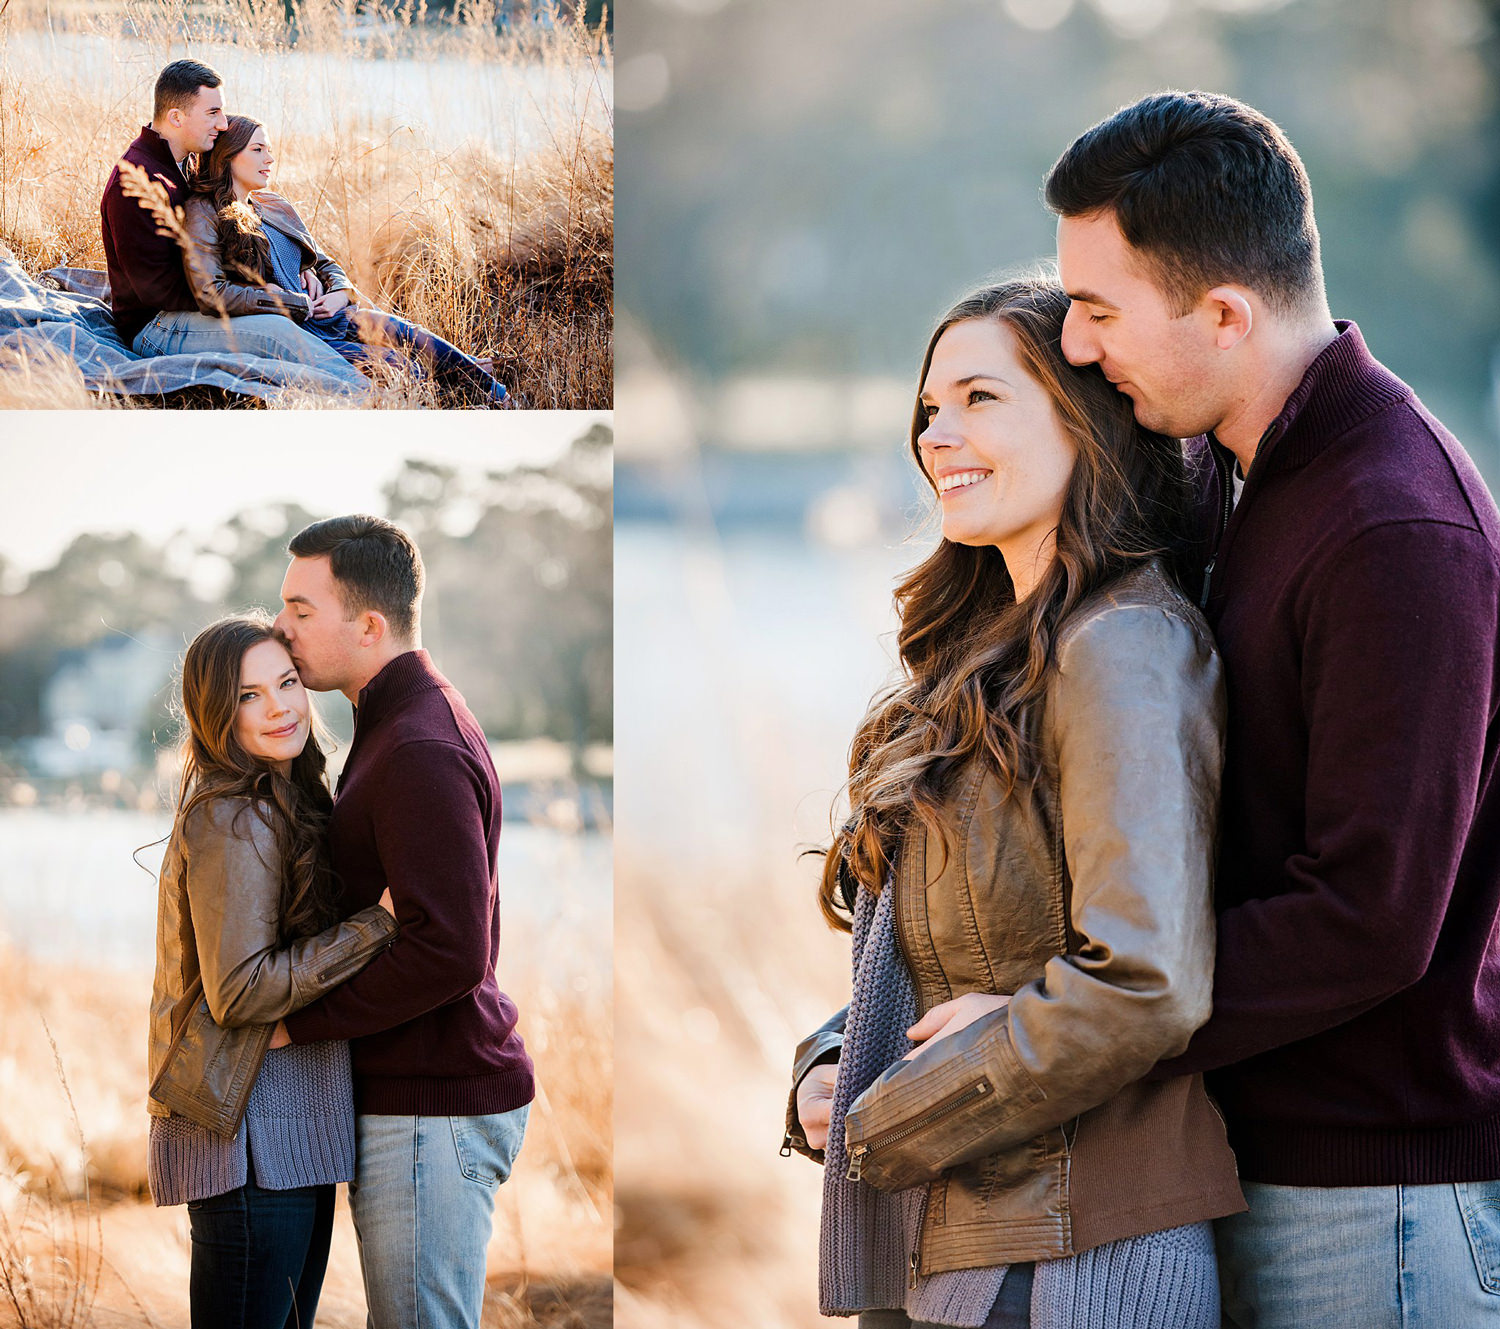 engagement-photography-virginia-beach-melissa-bliss-photography.jpg